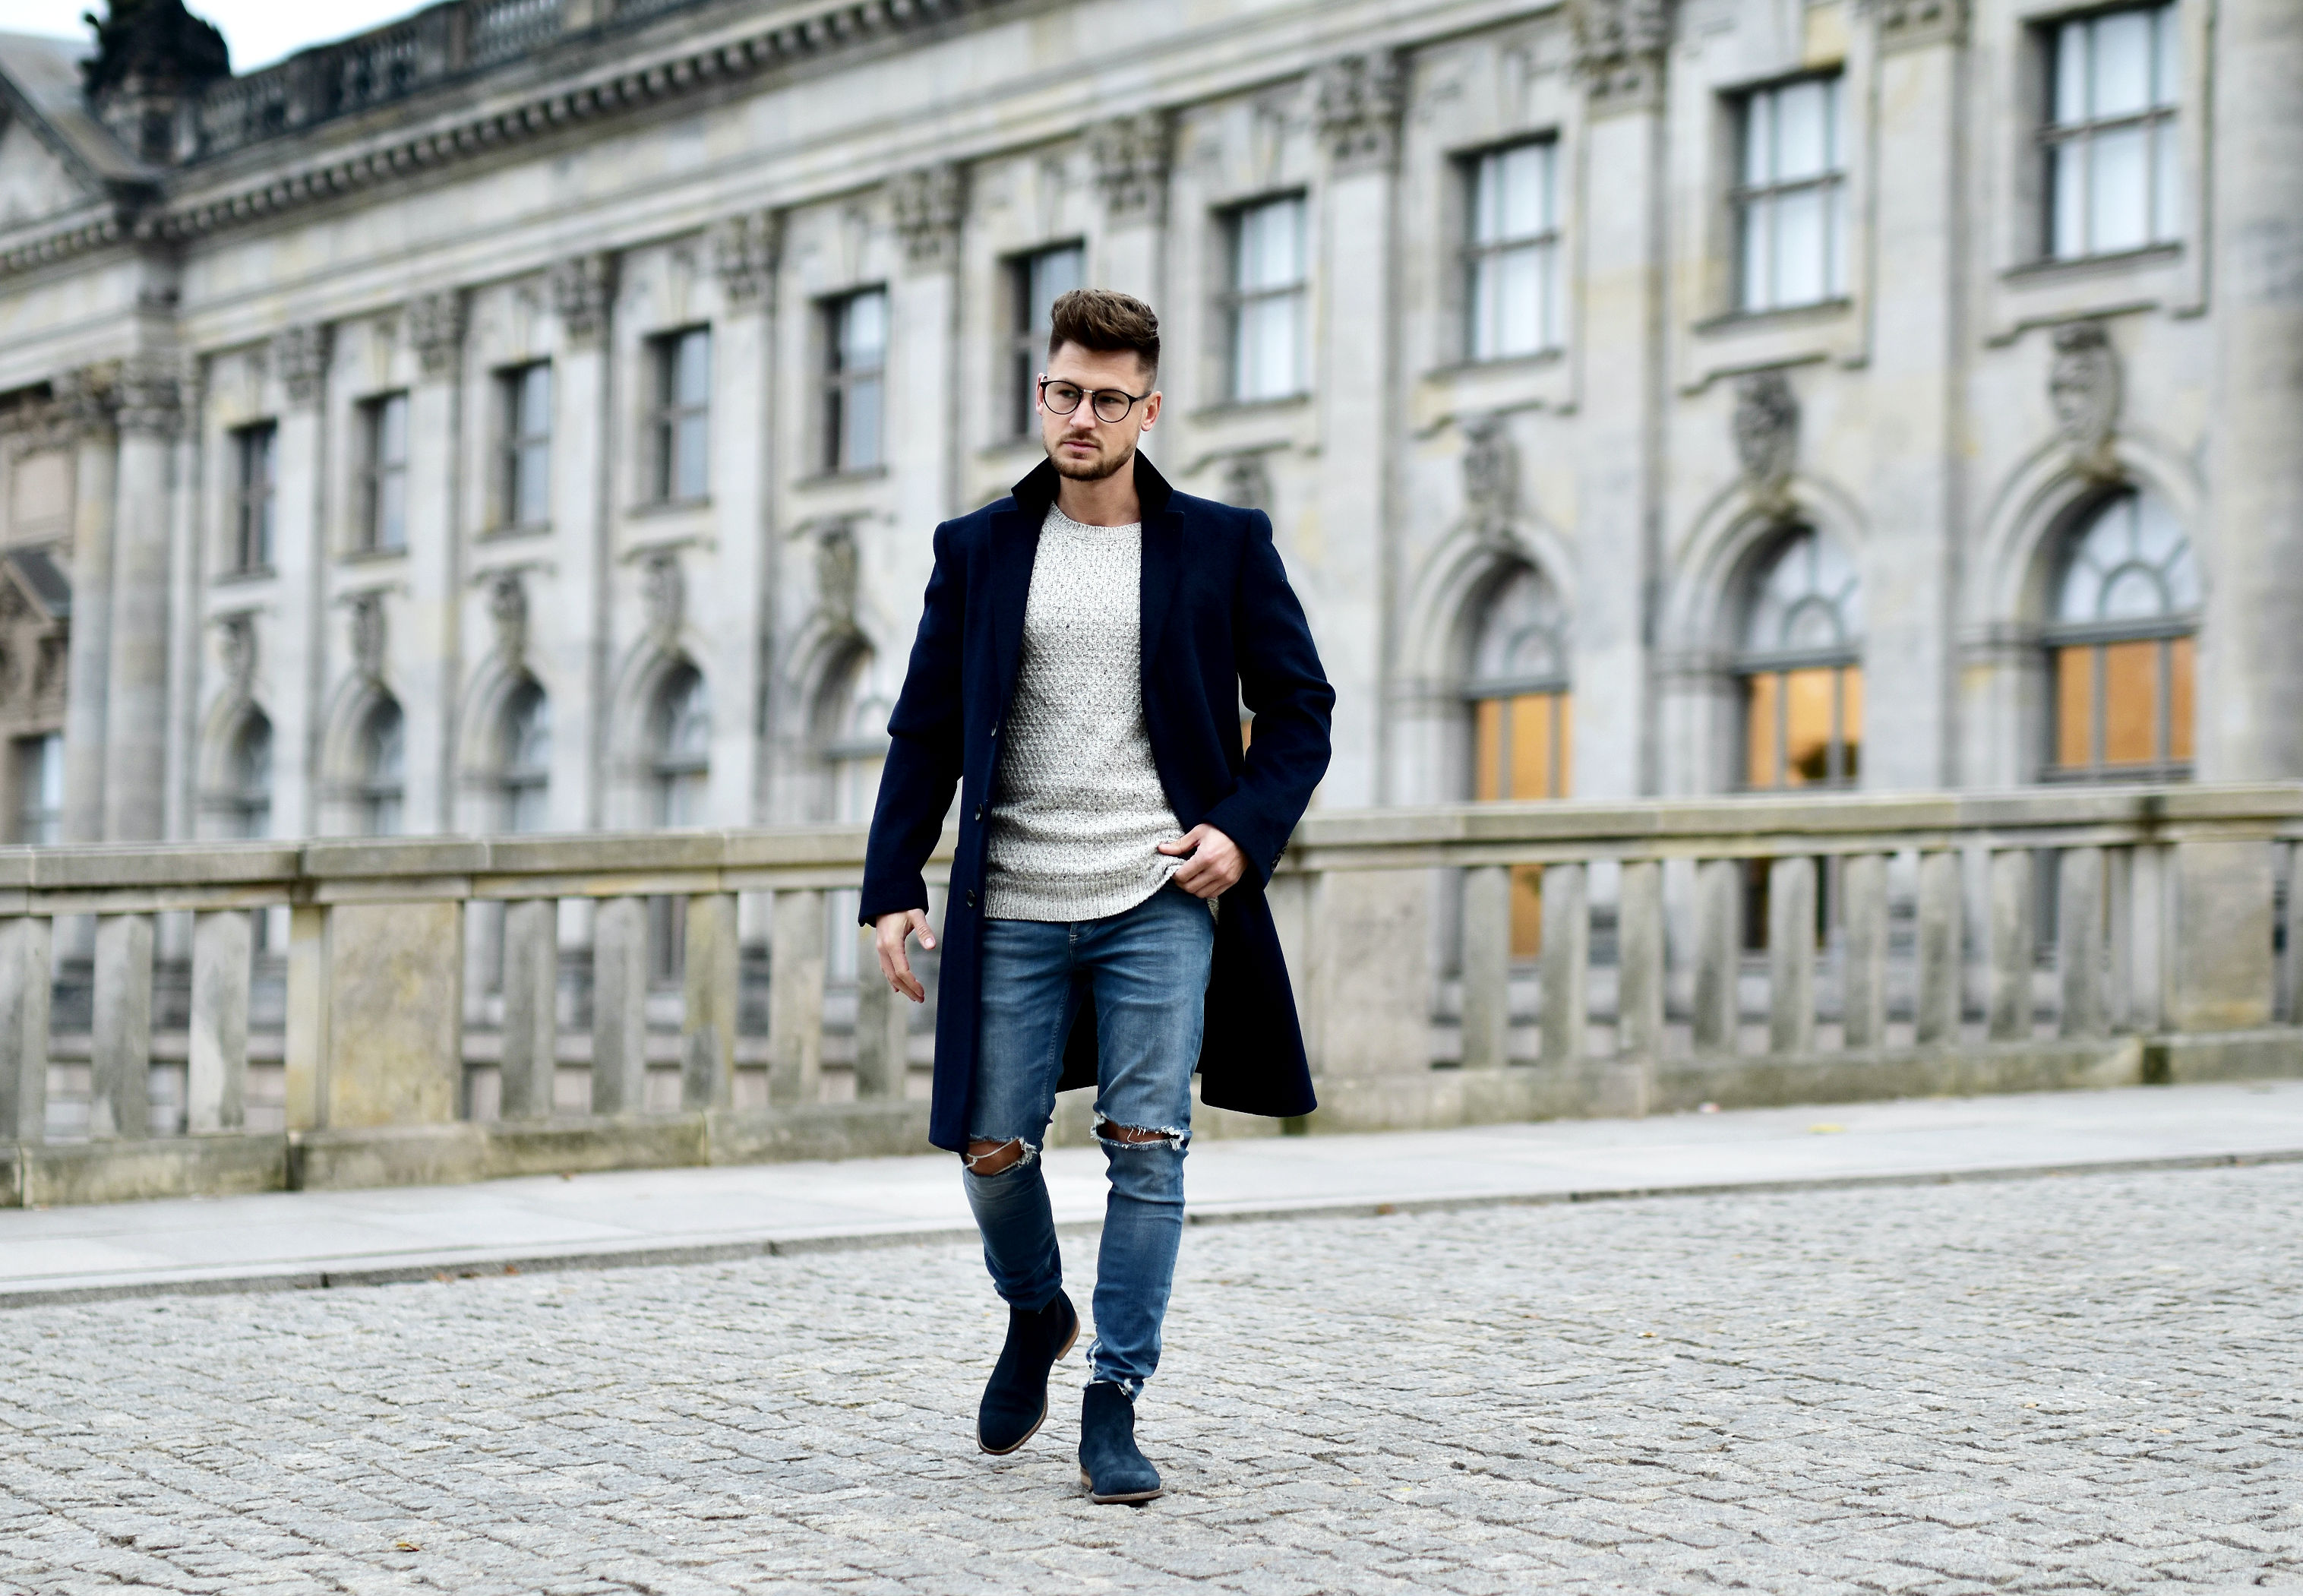 tommeezjerry-styleblog-maennerblog-maenner-modeblog-berlin-berlinblog-maennermodeblog-outfit-mantel-marks-and-spencer-coat-chelsea-boots-autumn-look-1